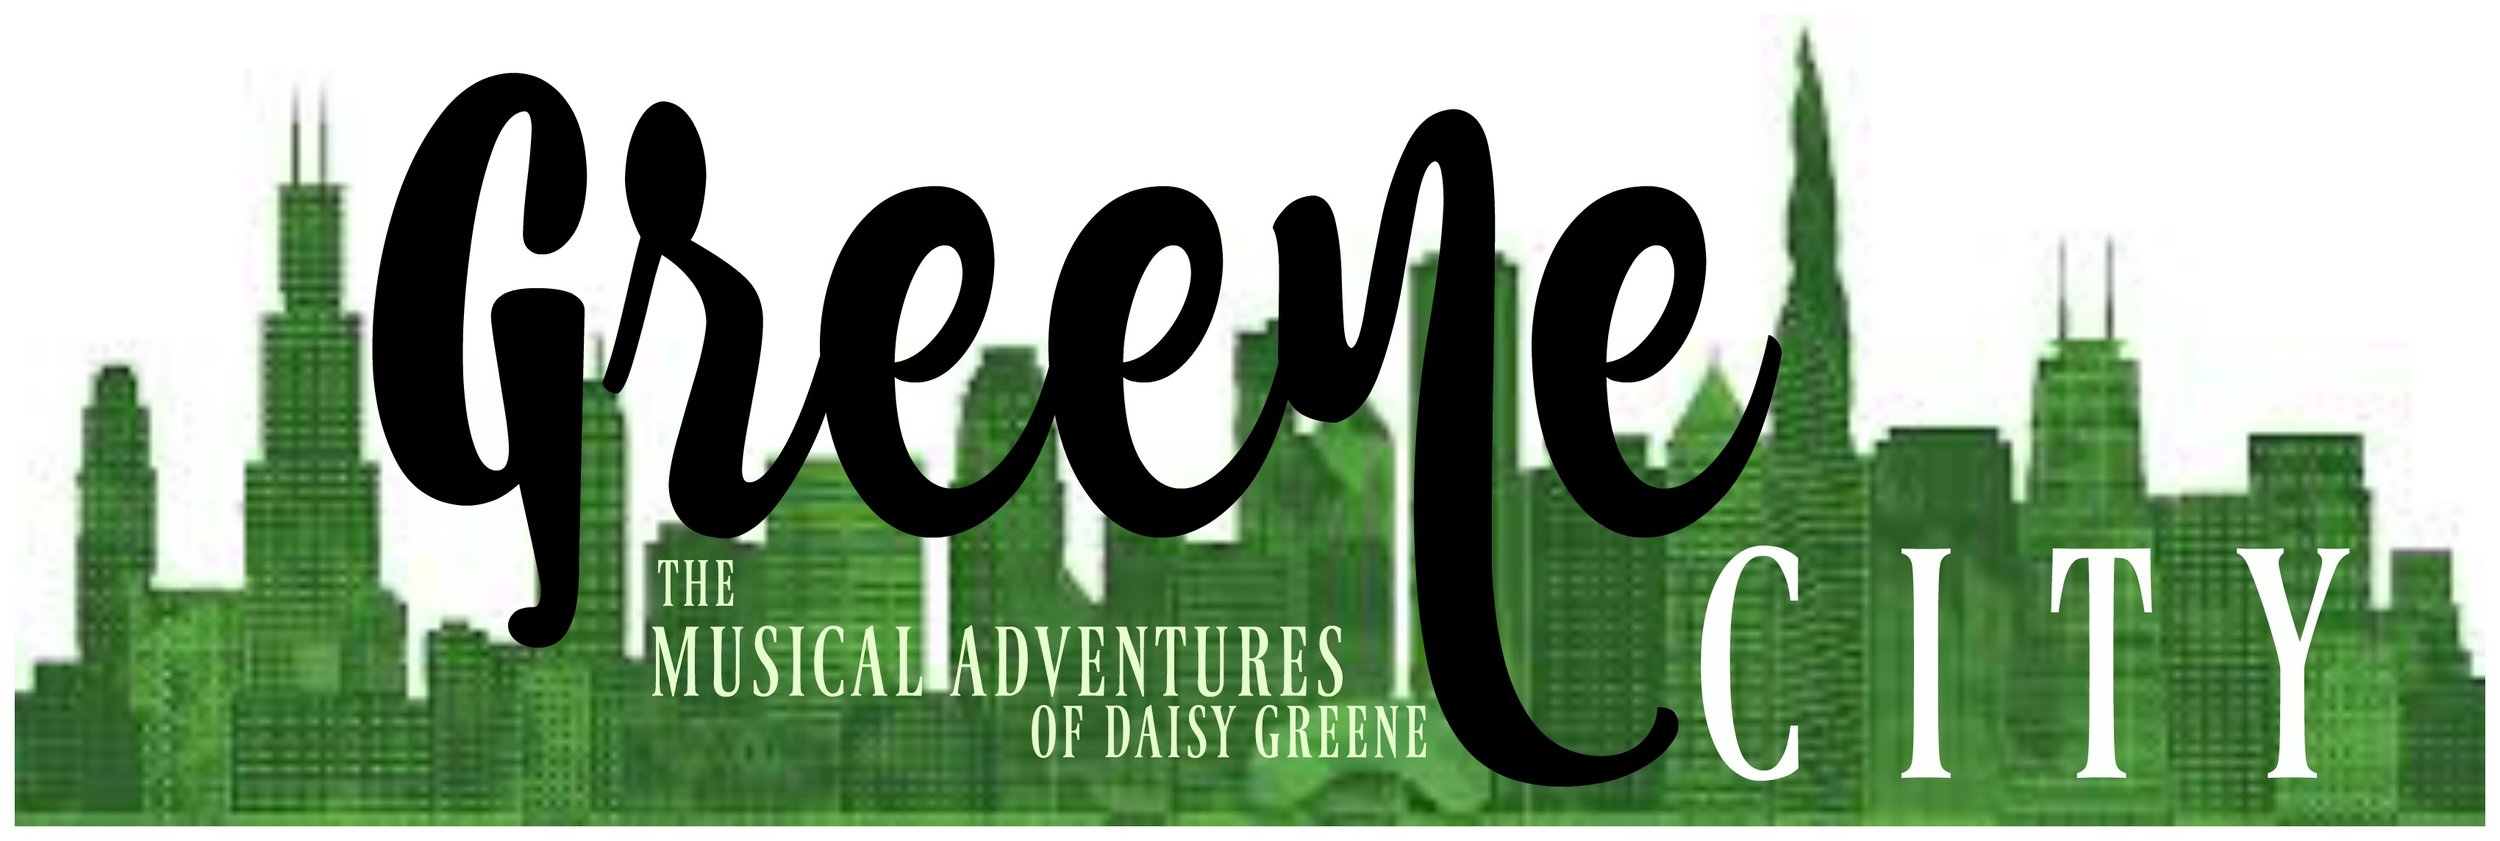 More info on the Pilot, including where & when you can join the ride coming soon....  Look out Chicago!Here come the Greenes!    Created by: John M Forte// Jenna Coker-Jones //Christopher Kale Jones  Original Music by:  Molly Bell